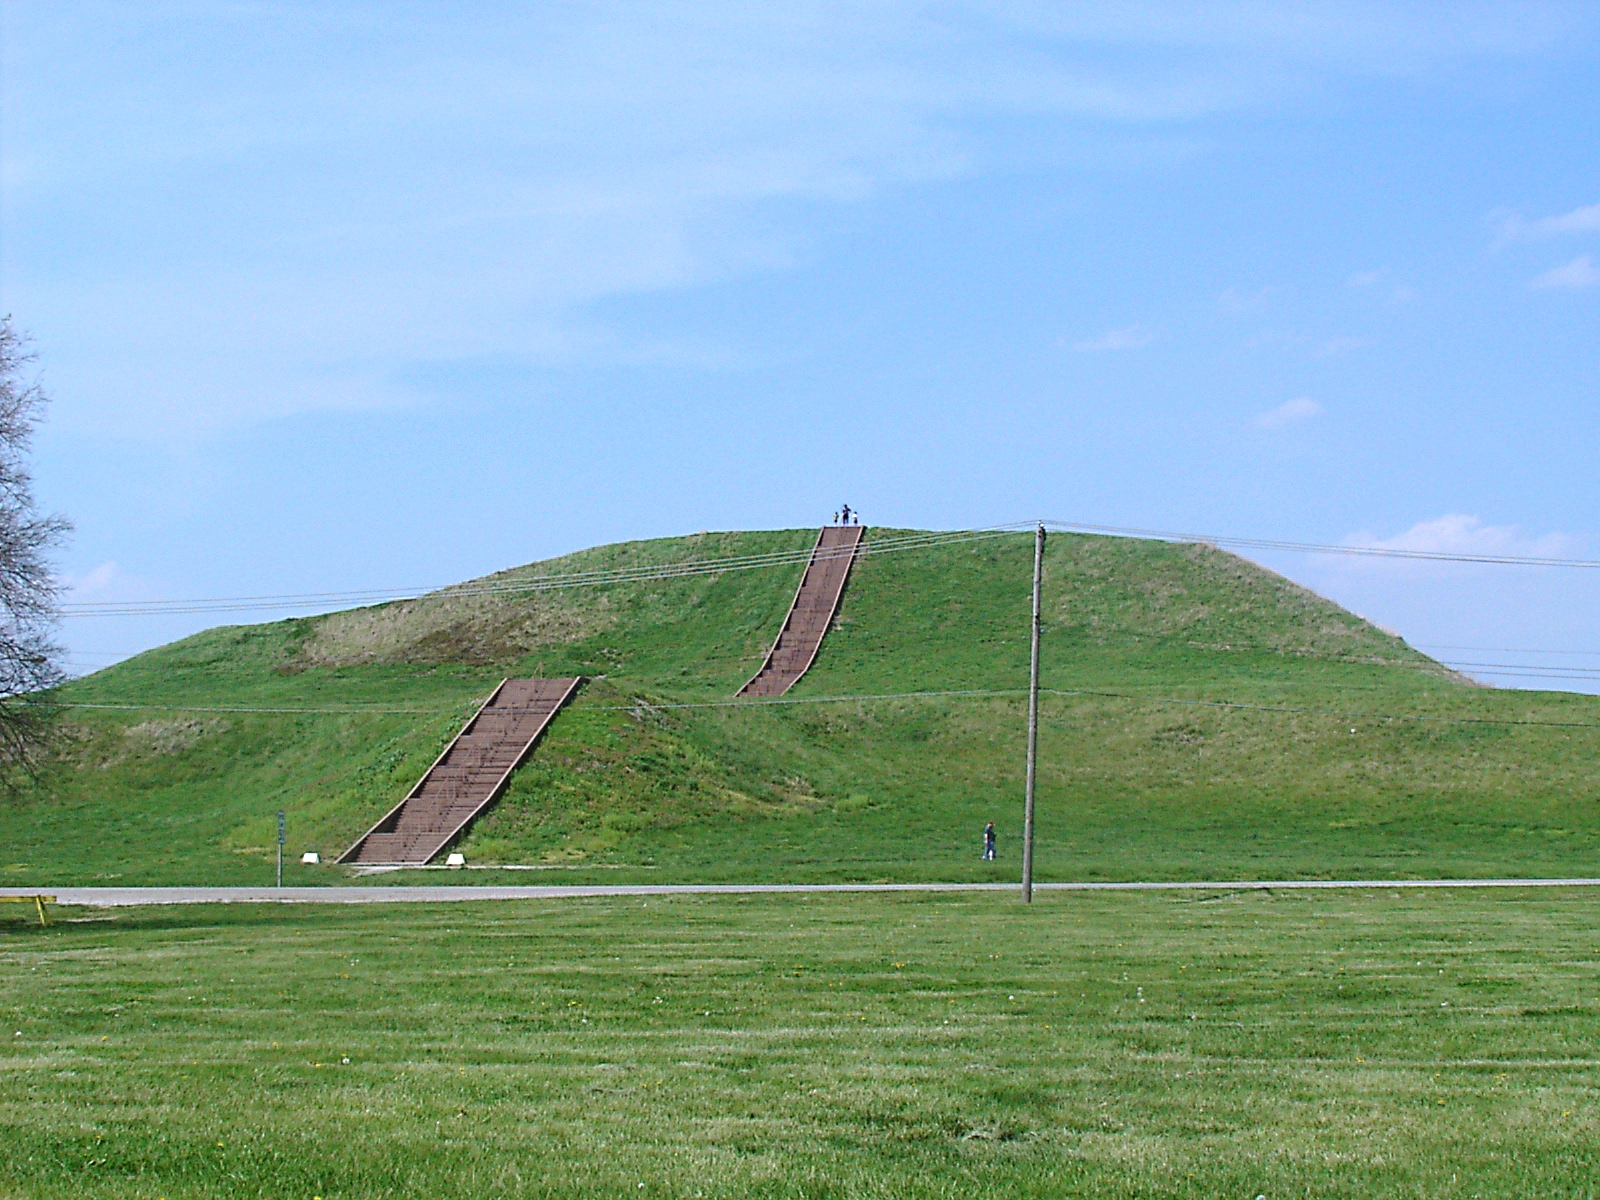 Pirâmide de Monks Mound, Estados Unidos